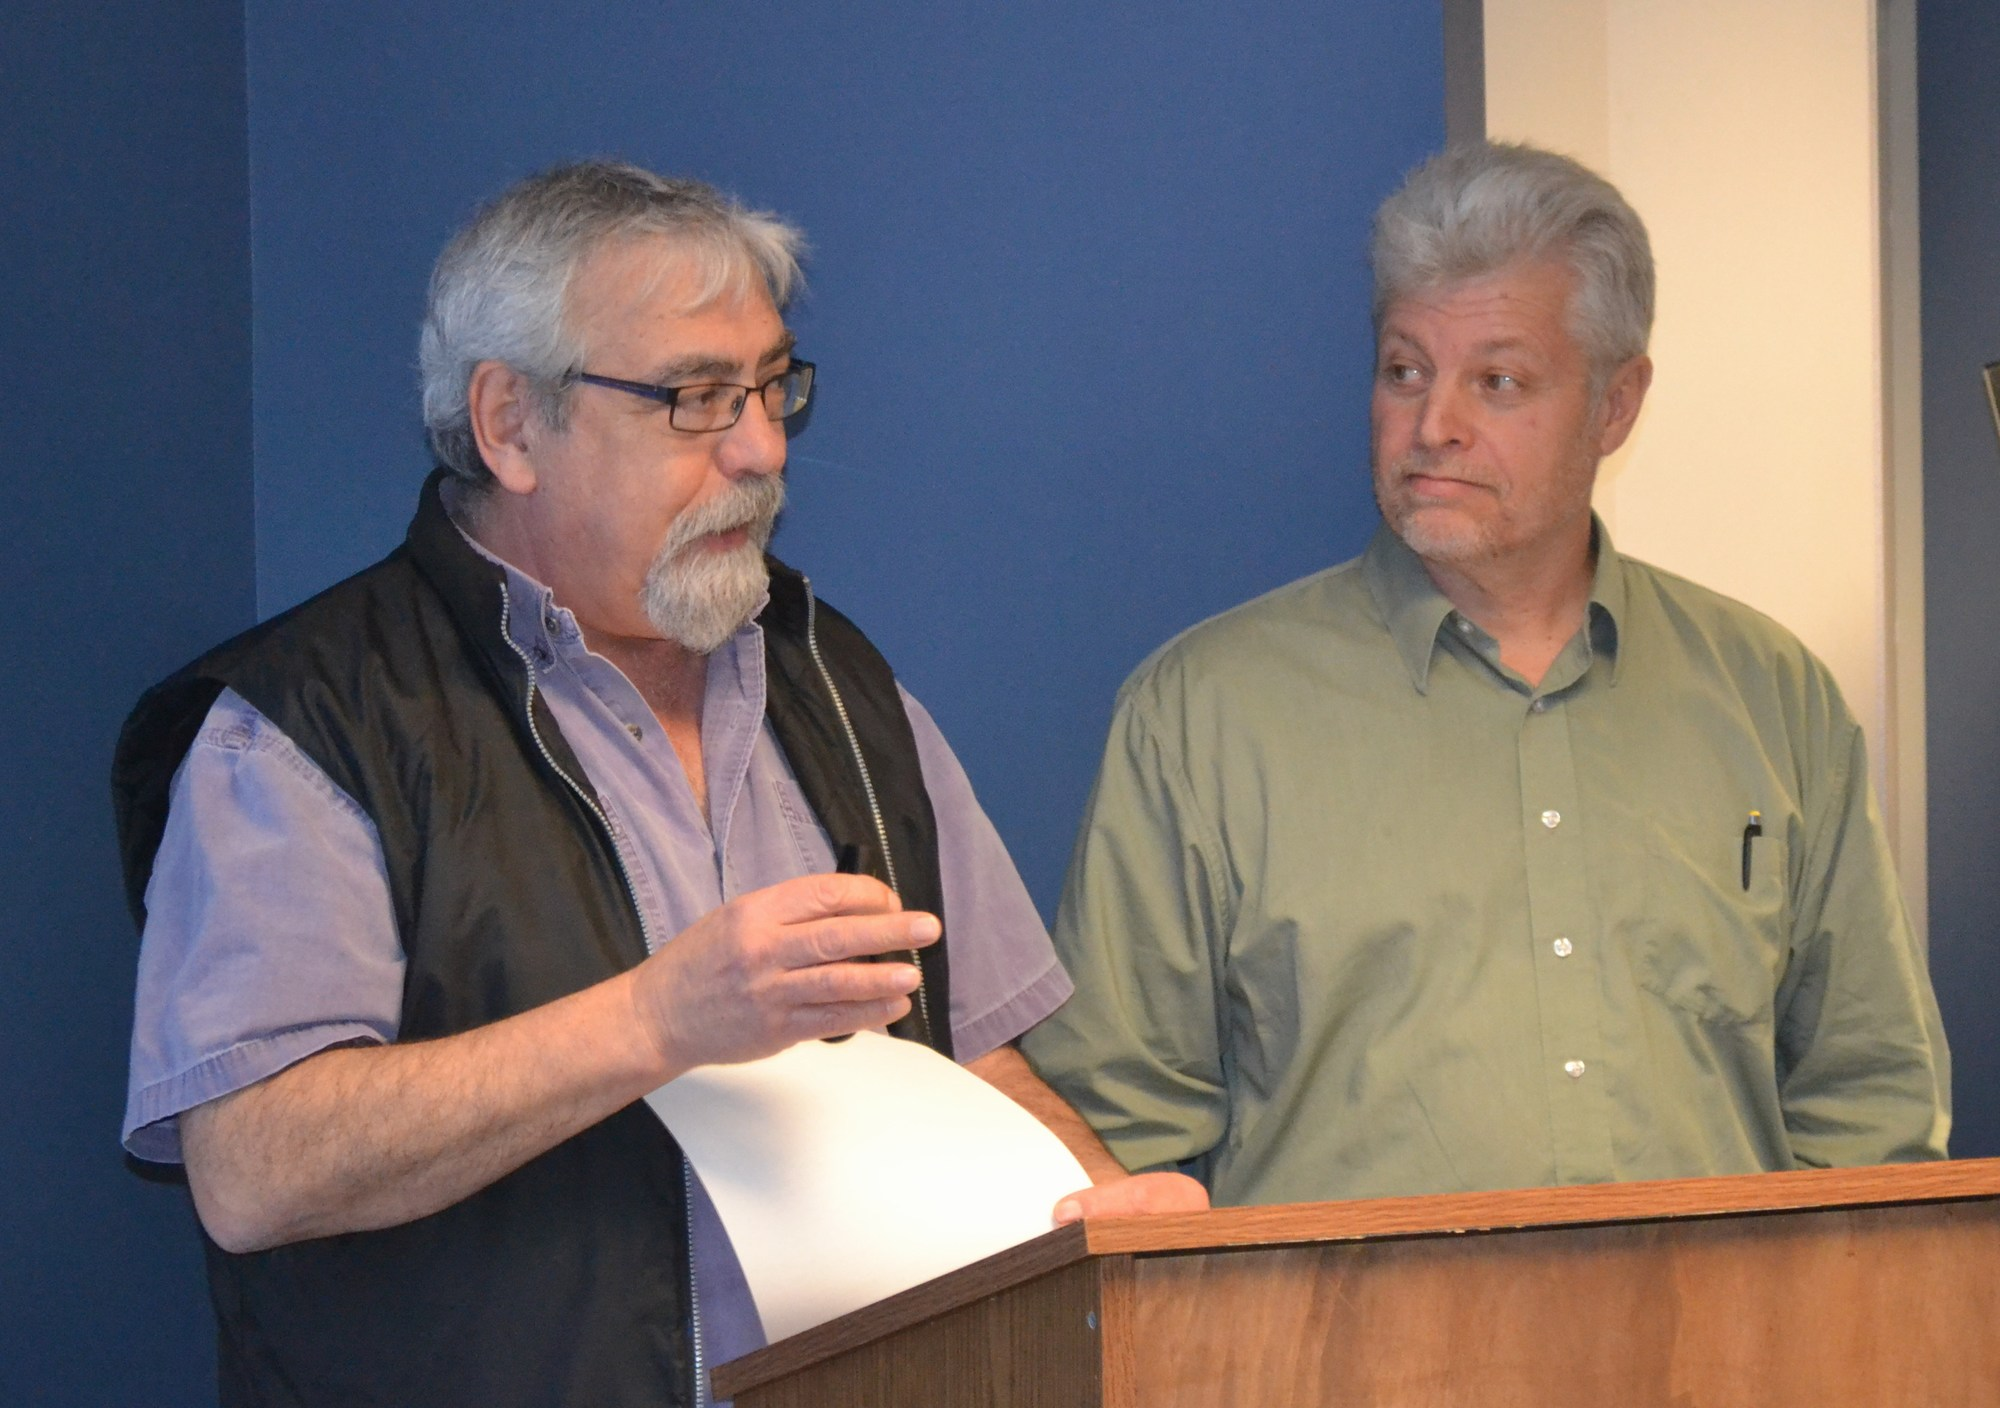 Jack Minard & David Stapley of the Comox Valley Land Trust